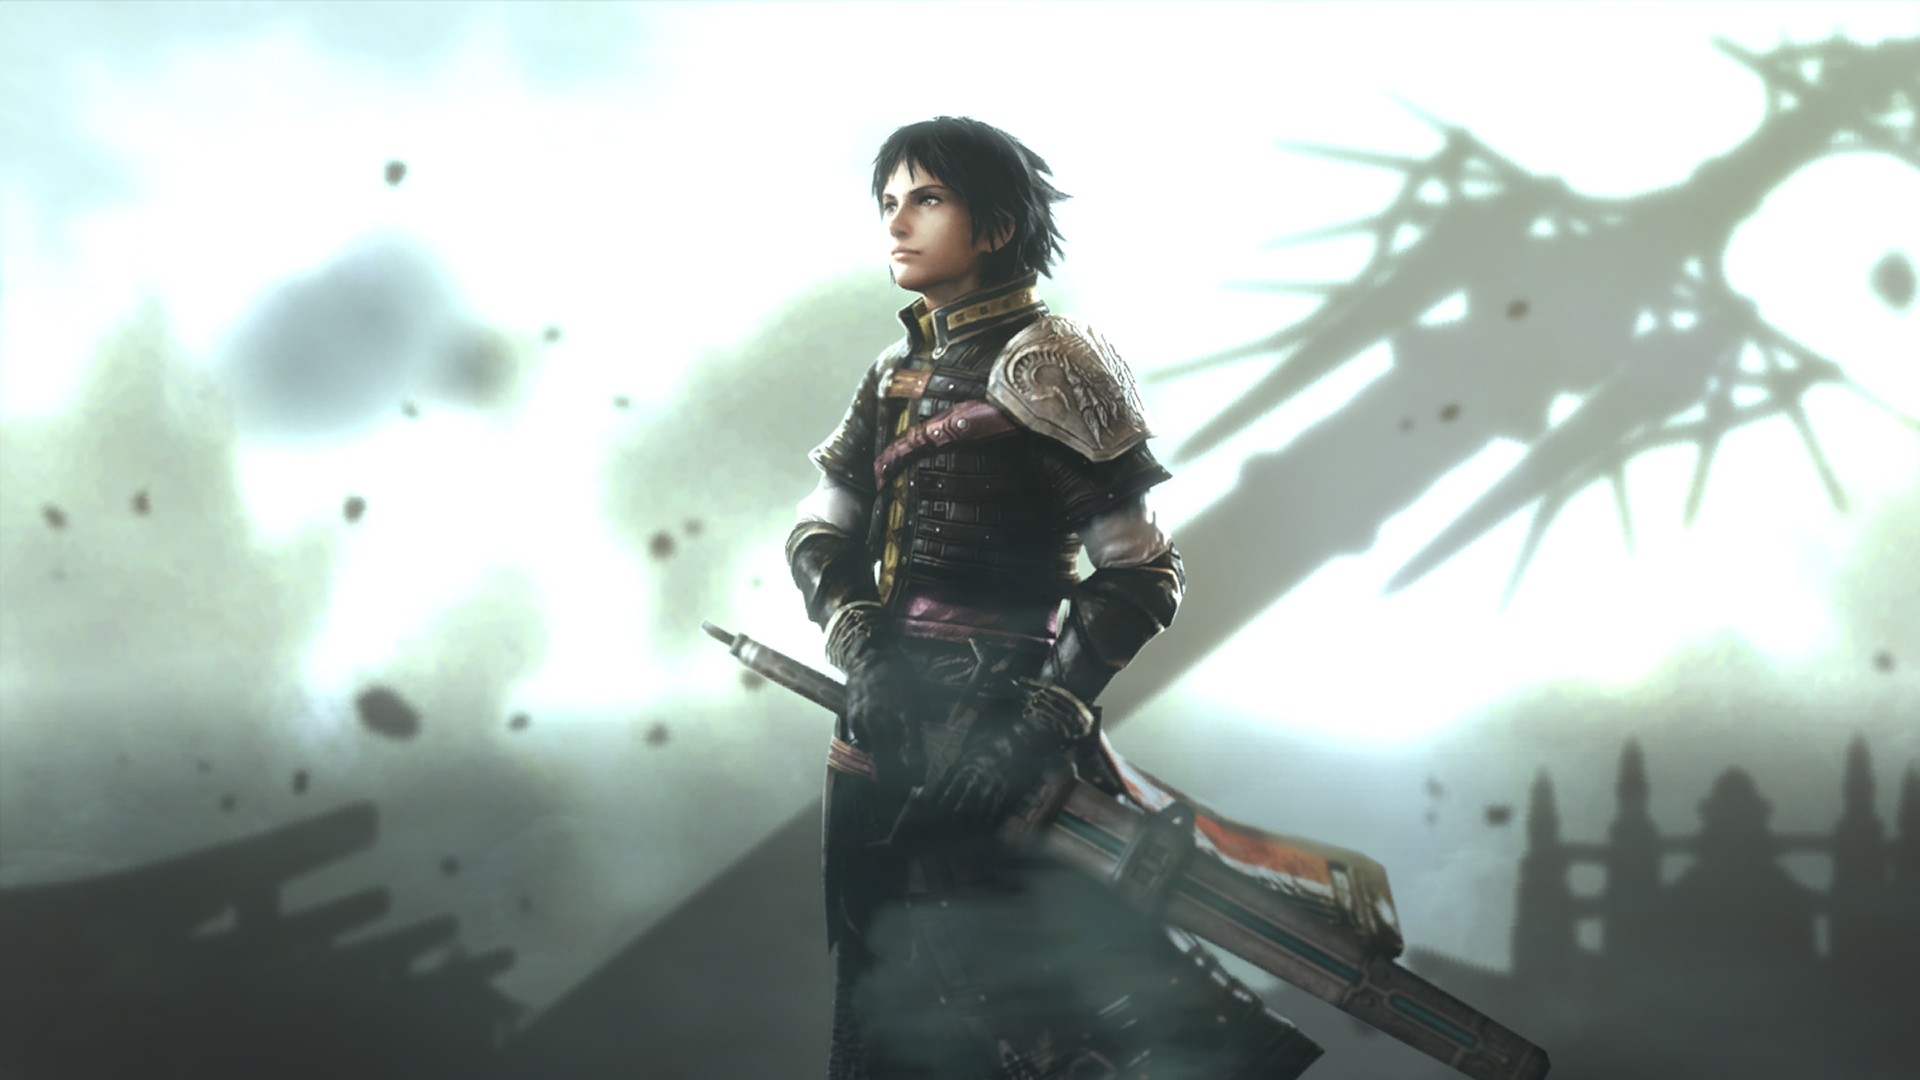 Wallpaper Remnants Entrancing Of Last Remnant Image